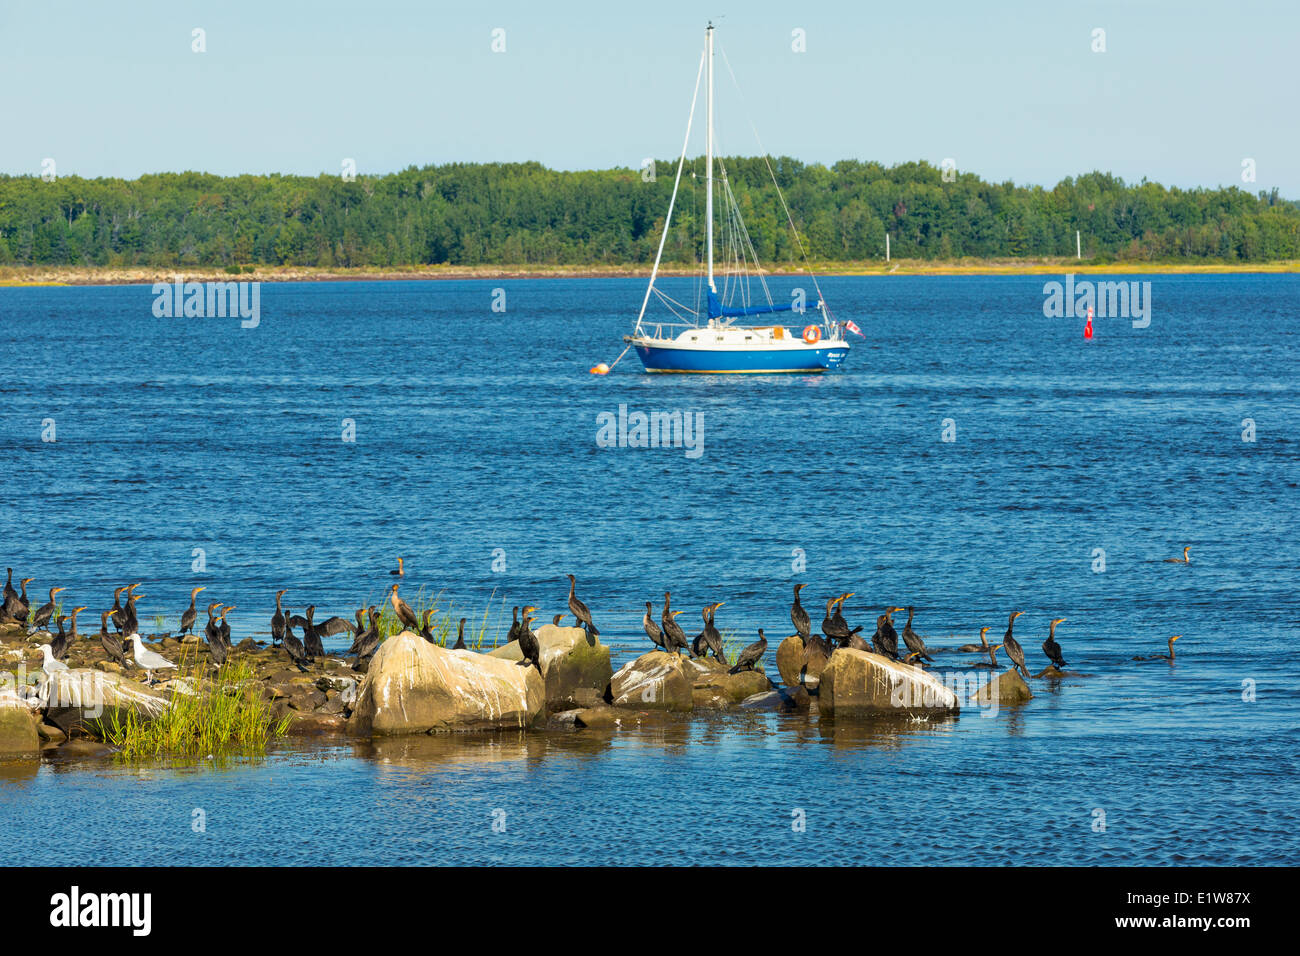 Cormorants and sailboat, Wallace, Nova Scotia, Canada - Stock Image